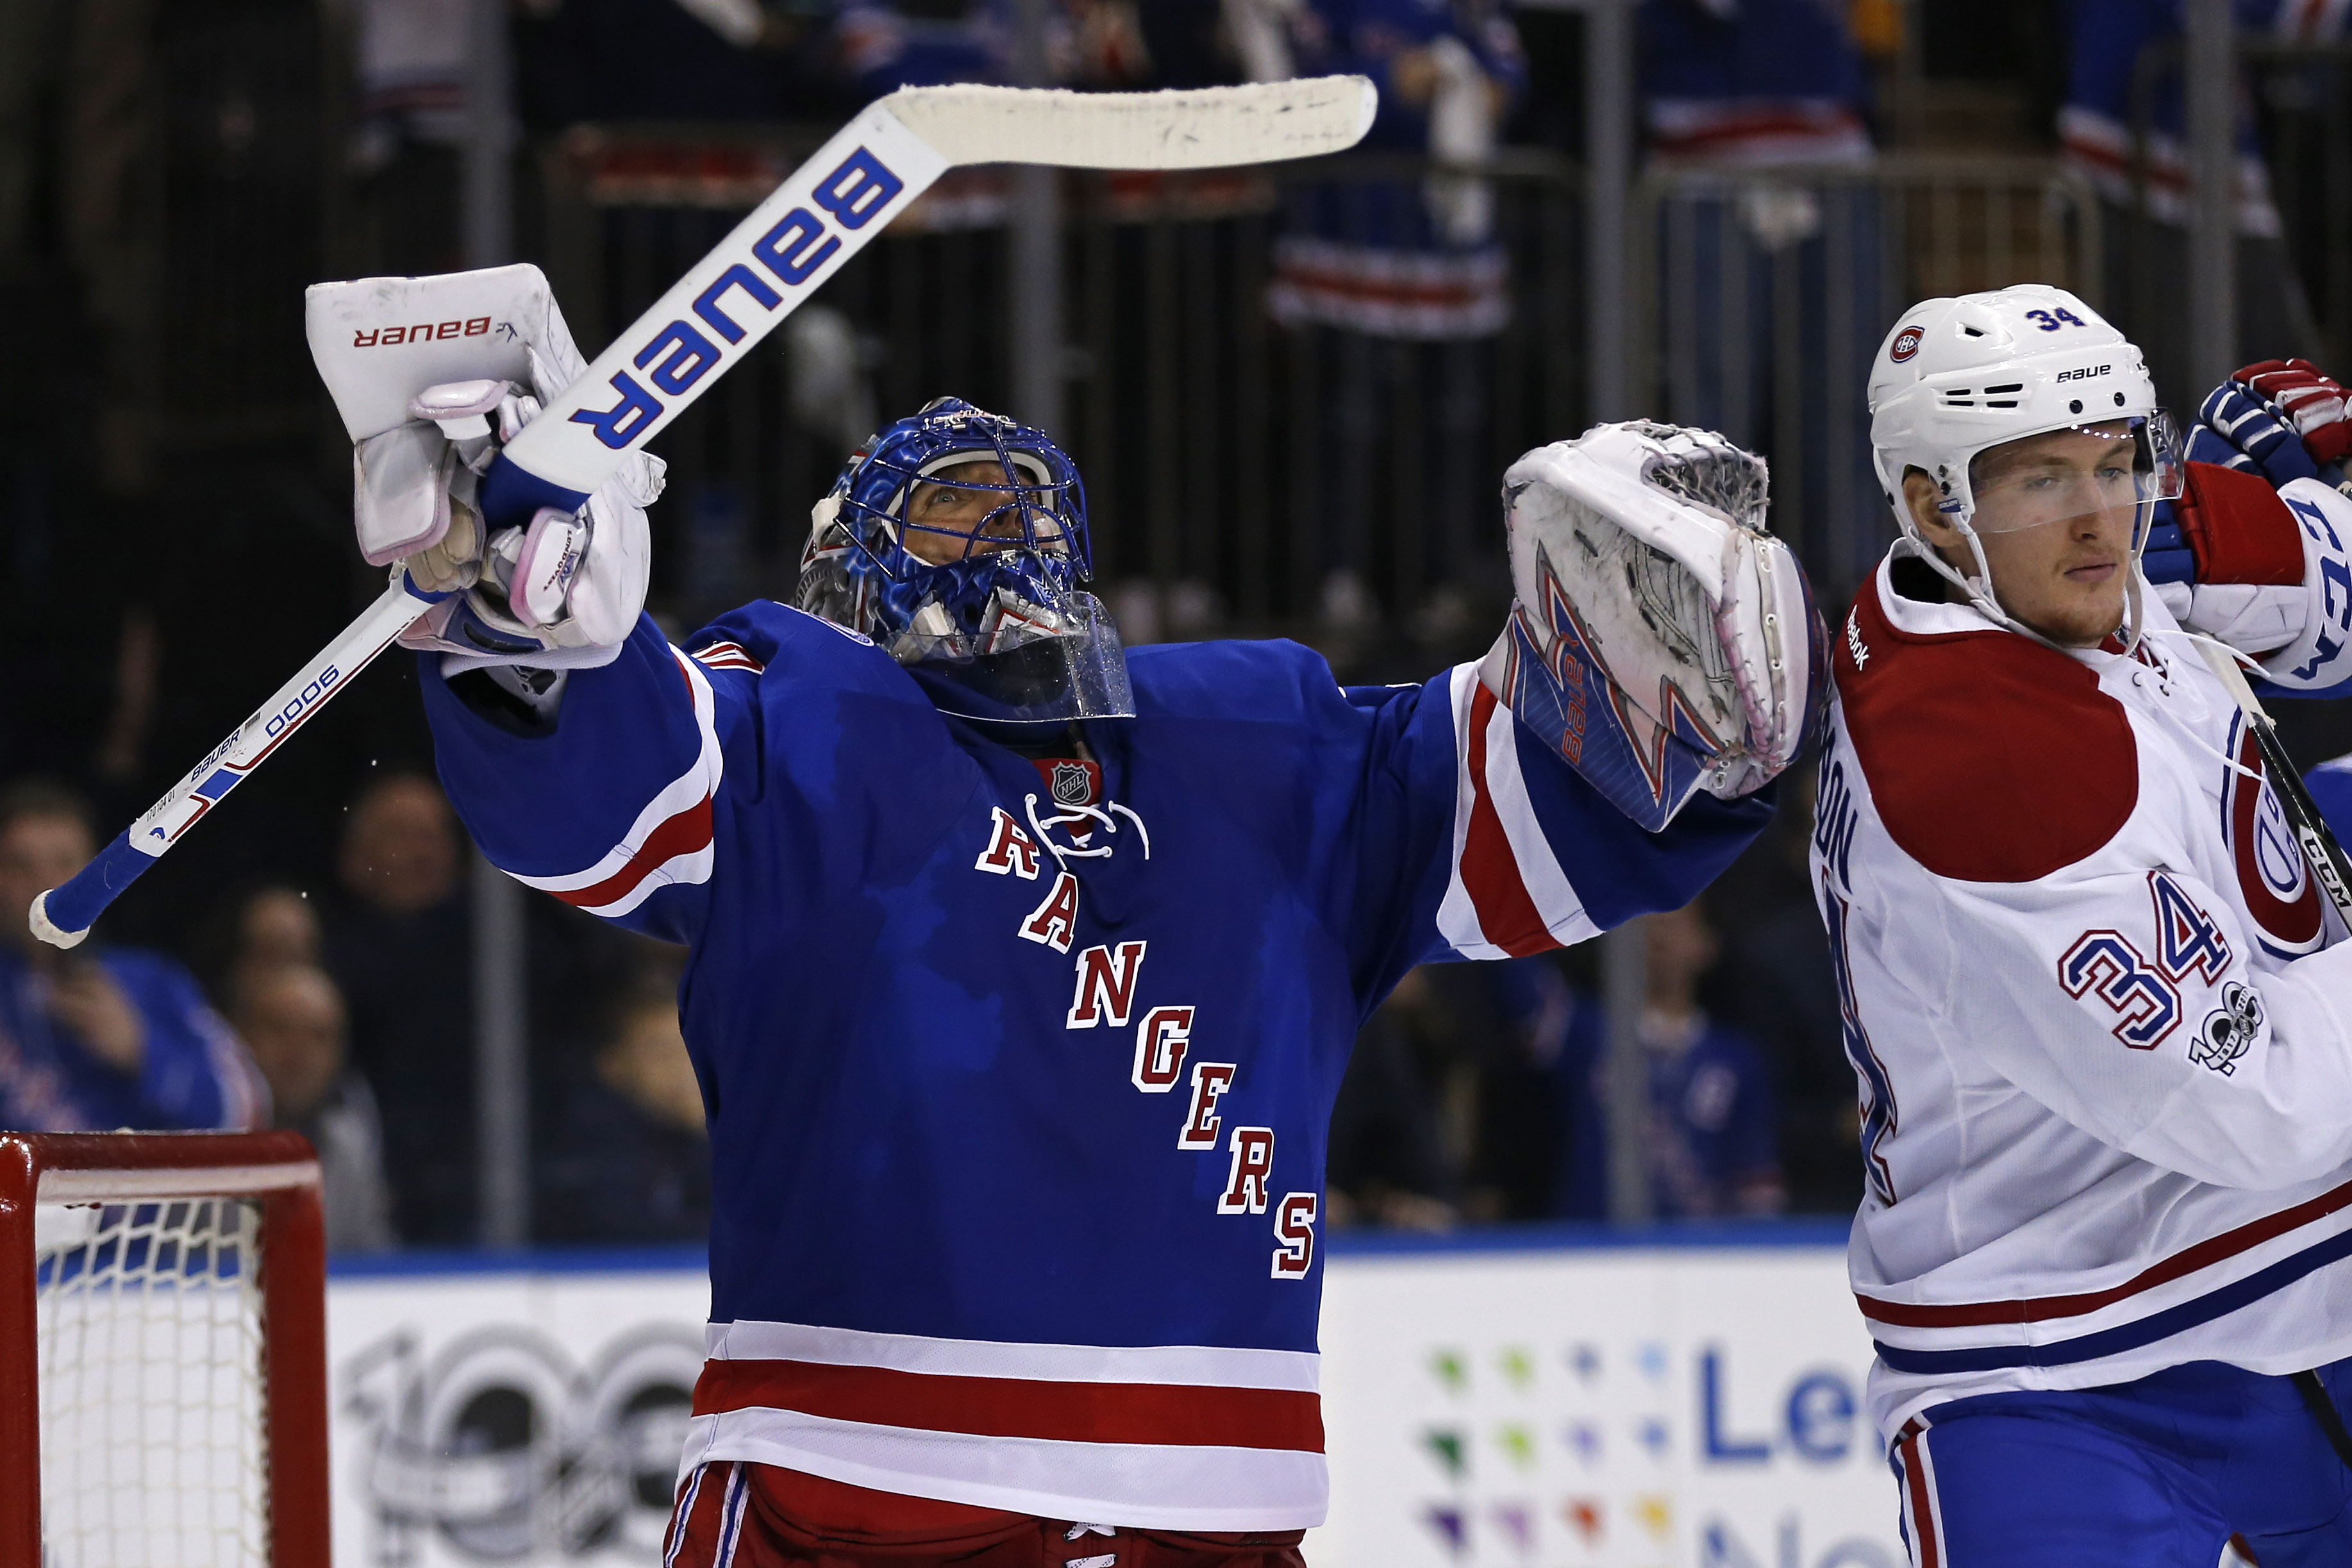 10026467-nhl-stanley-cup-playoffs-montreal-canadiens-at-new-york-rangers